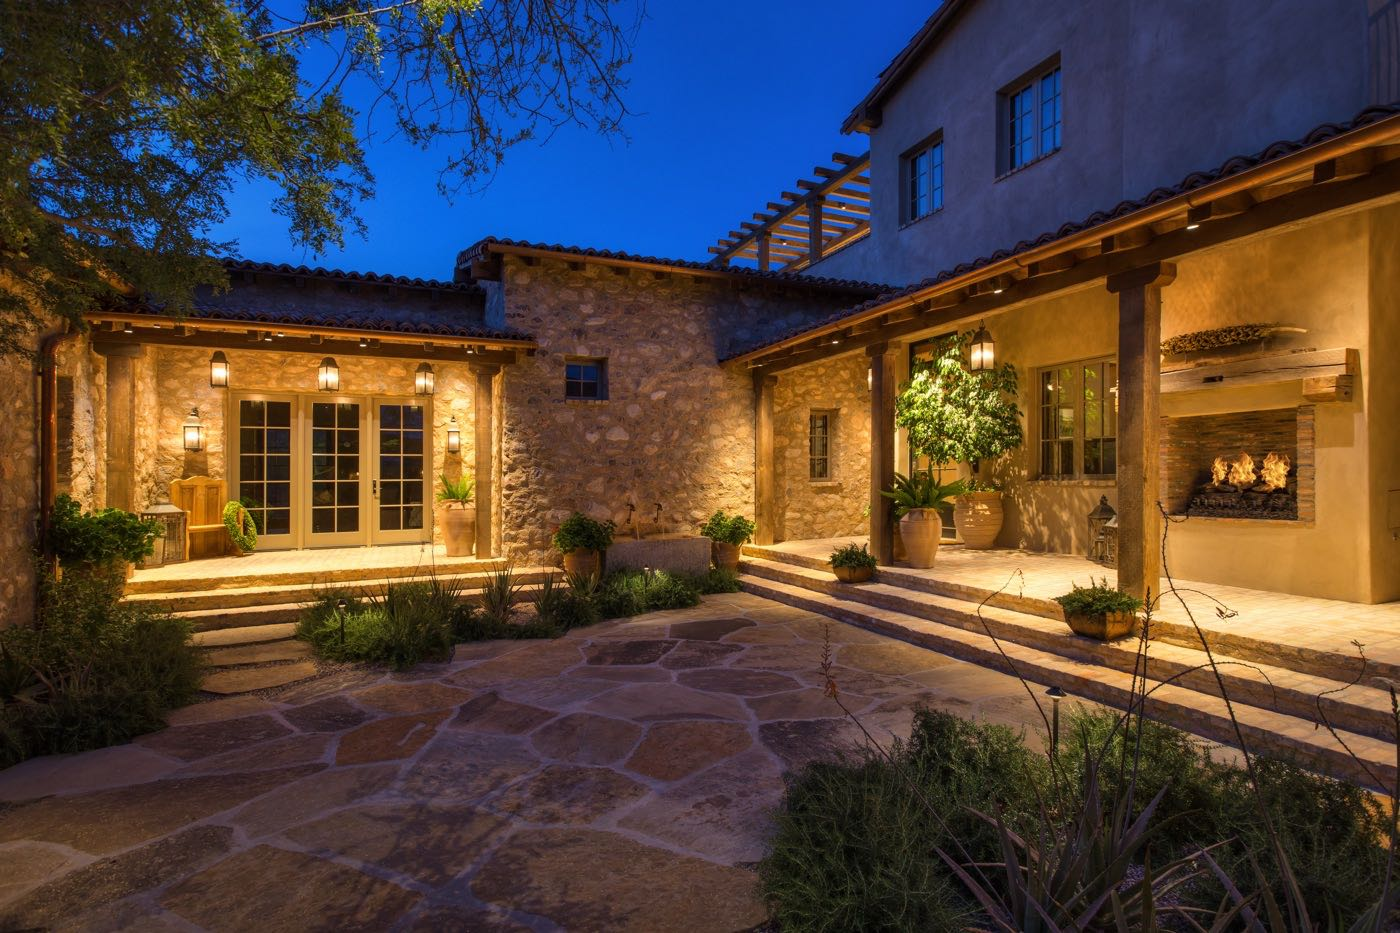 Silverleaf Scottsdale Luxury Custom Residence Spiral Architects Gene Kniaz Entry Courtyard